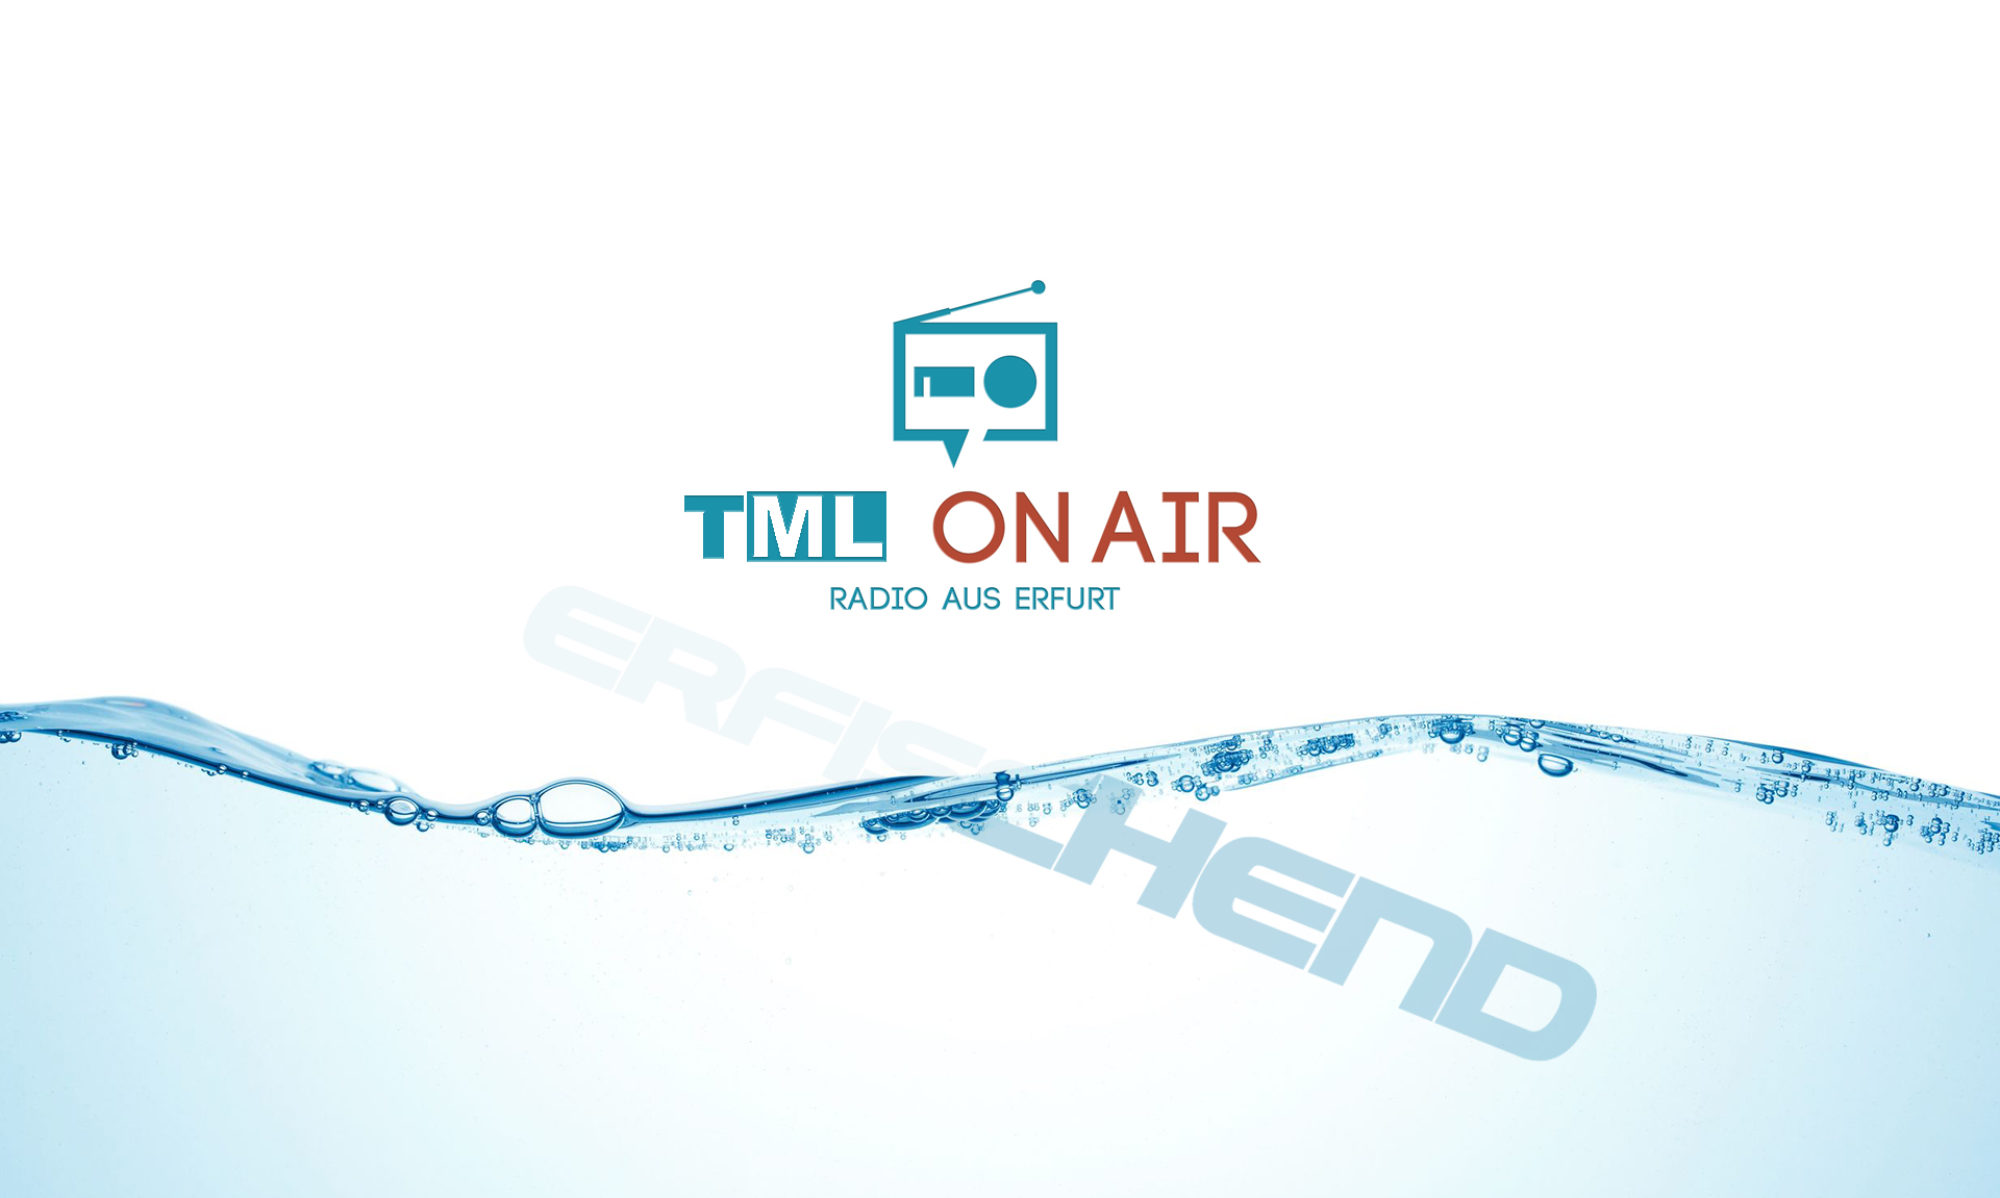 TML on air